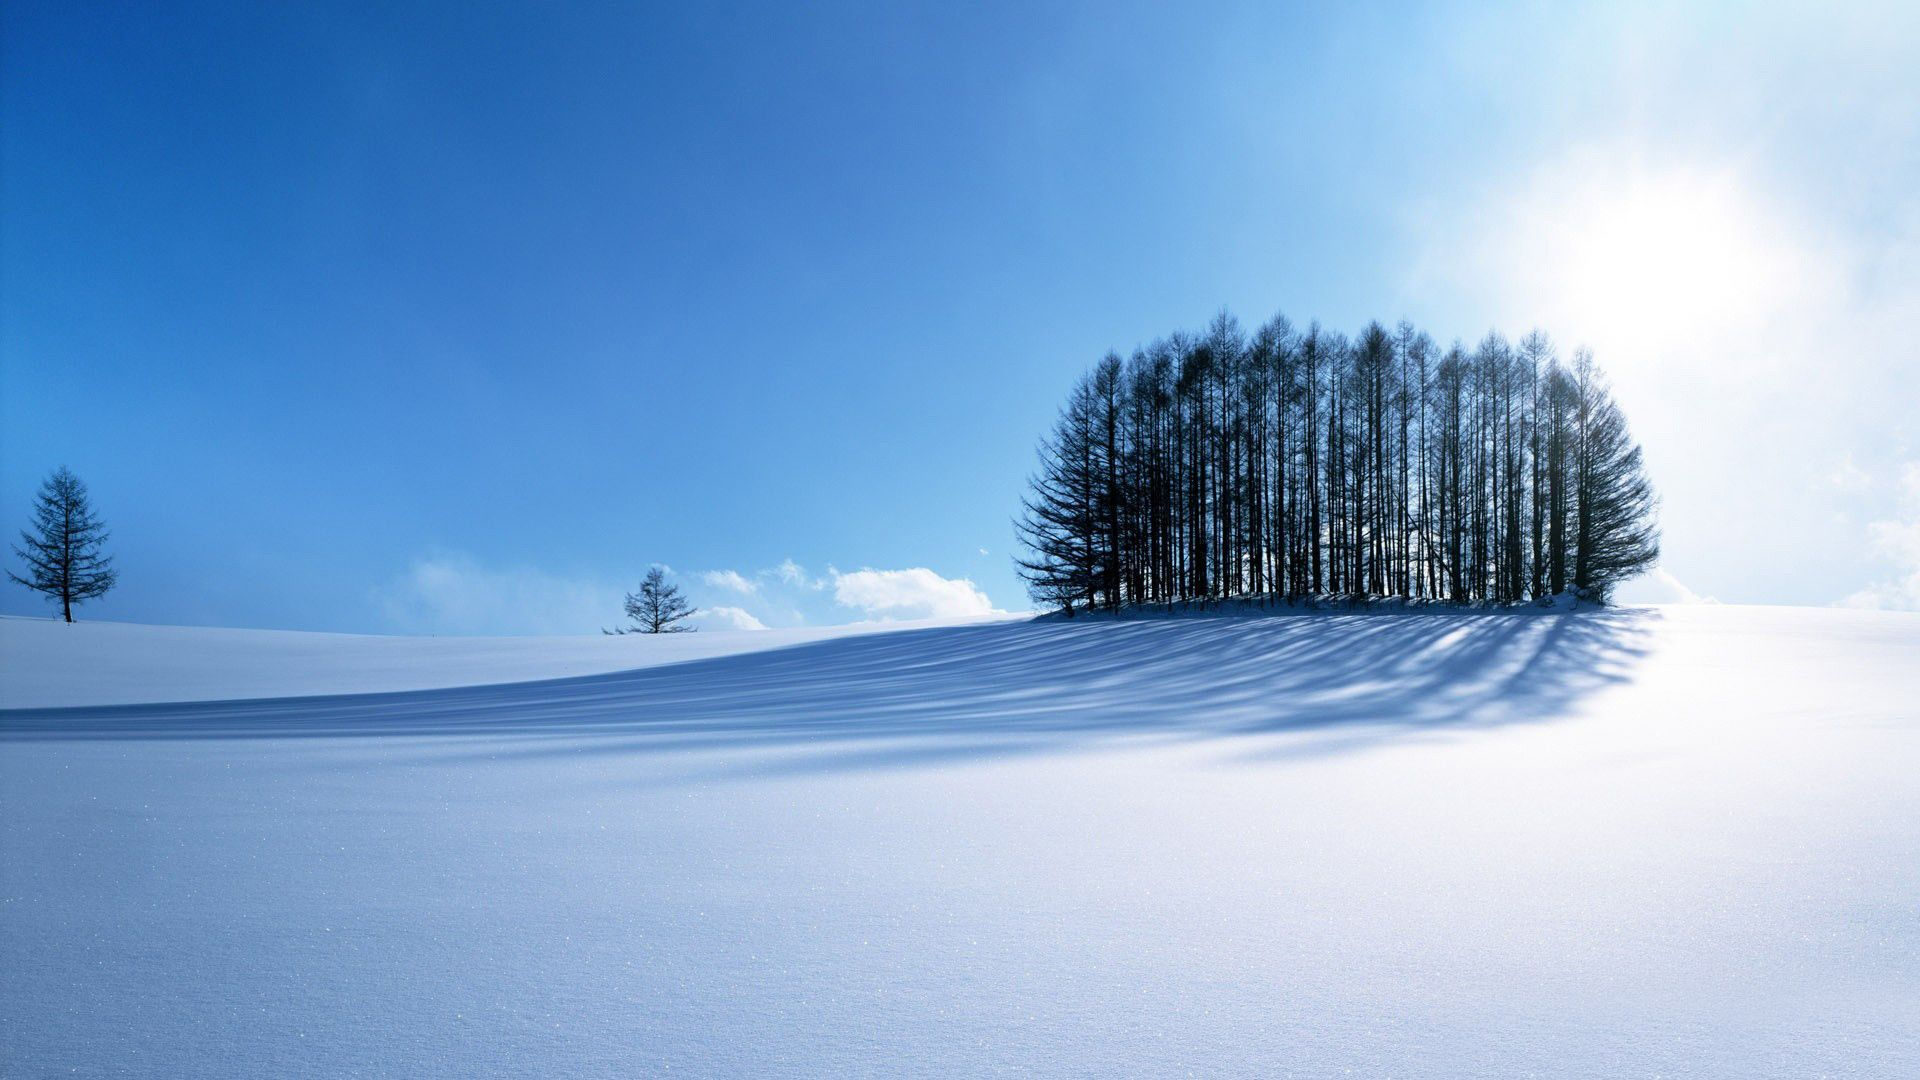 widescreen-winter-wallpaper